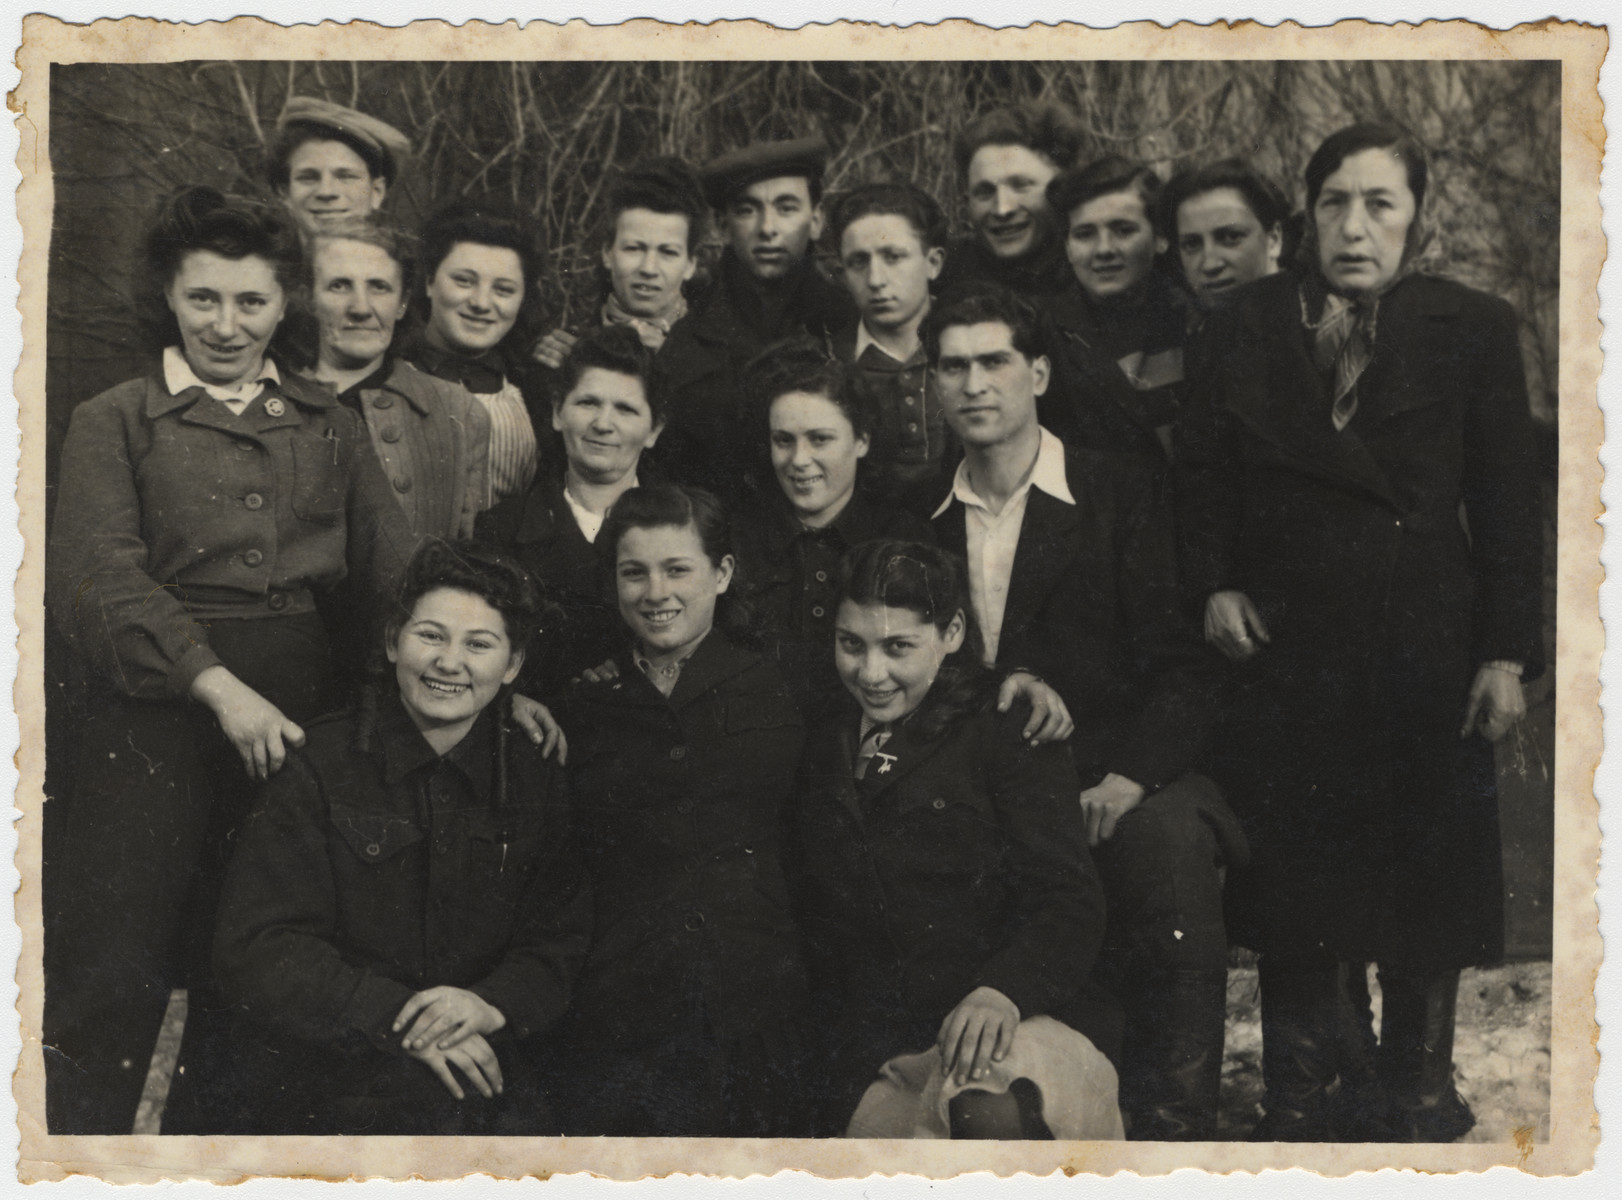 Group portrait of members of the Zionist youth movement Hashomer Hatzair in the Bergen-Belsen displaced persons' camp.  Max Schanzer is pictured in the back row, fifth from the right.